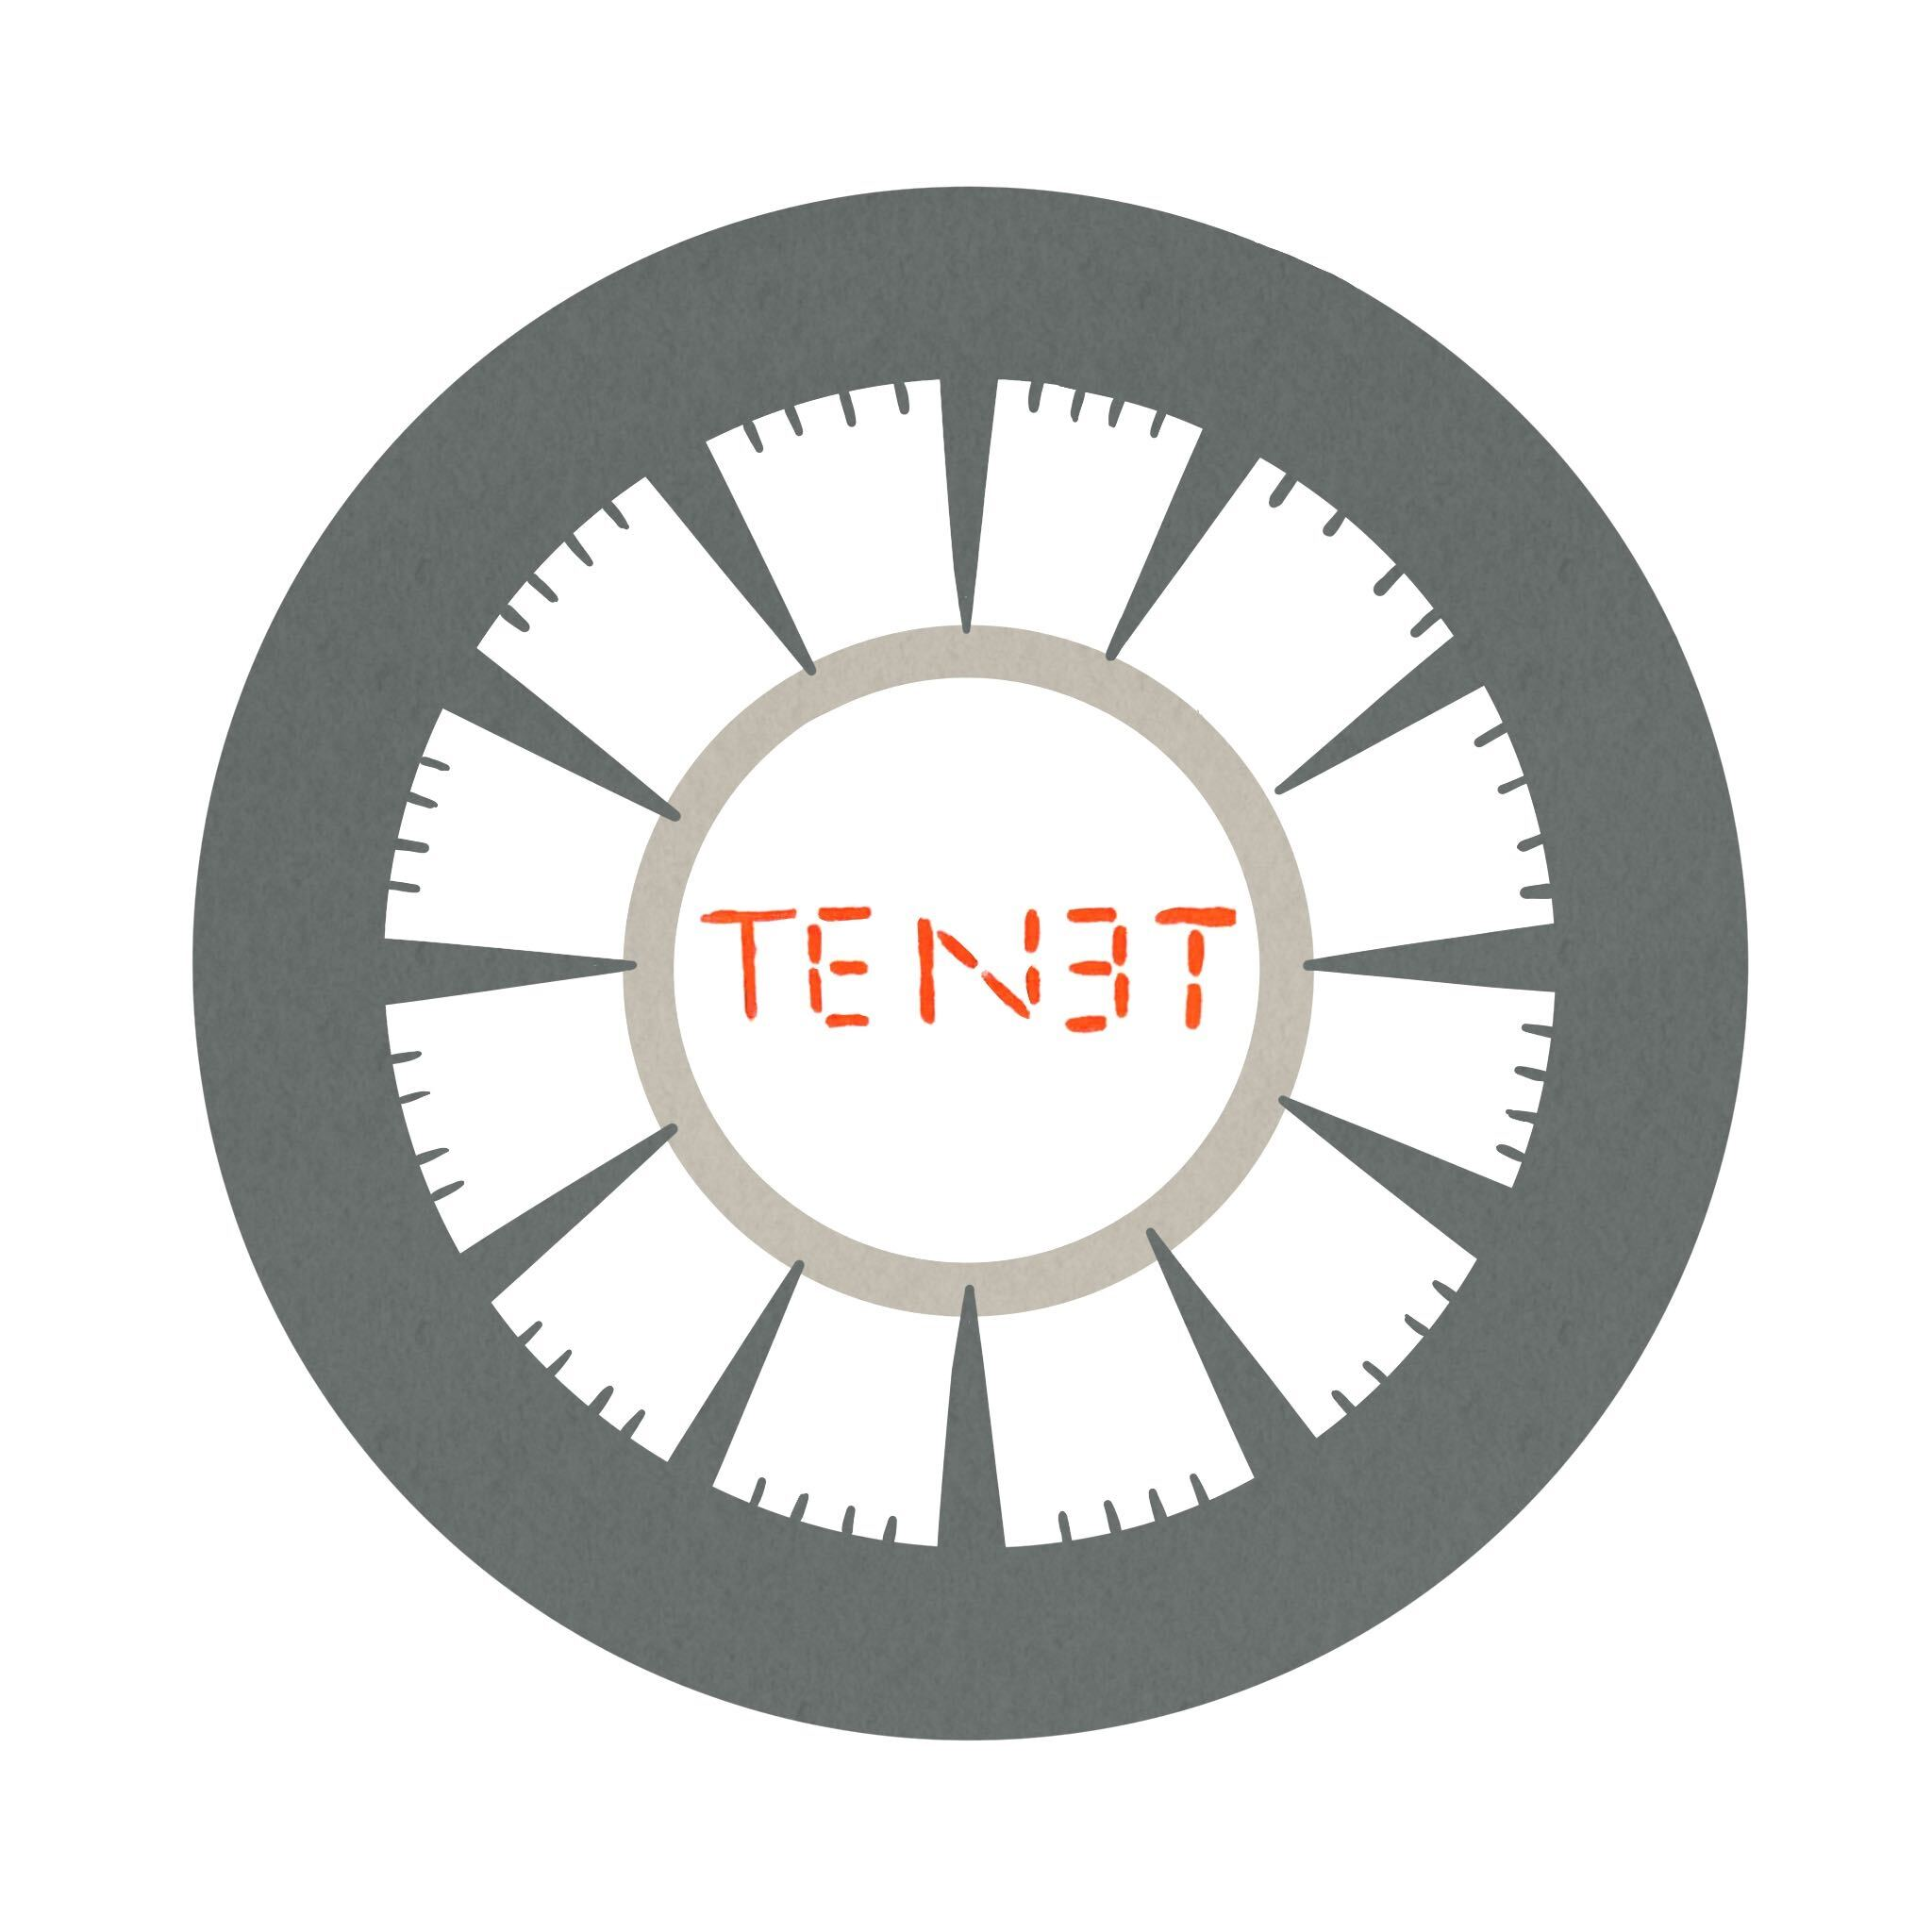 """Tenet is about a secret agent attempting to stop World War Three, but with a Christopher Nolan movie, we always have to ask, """"Is it really about anything?"""""""